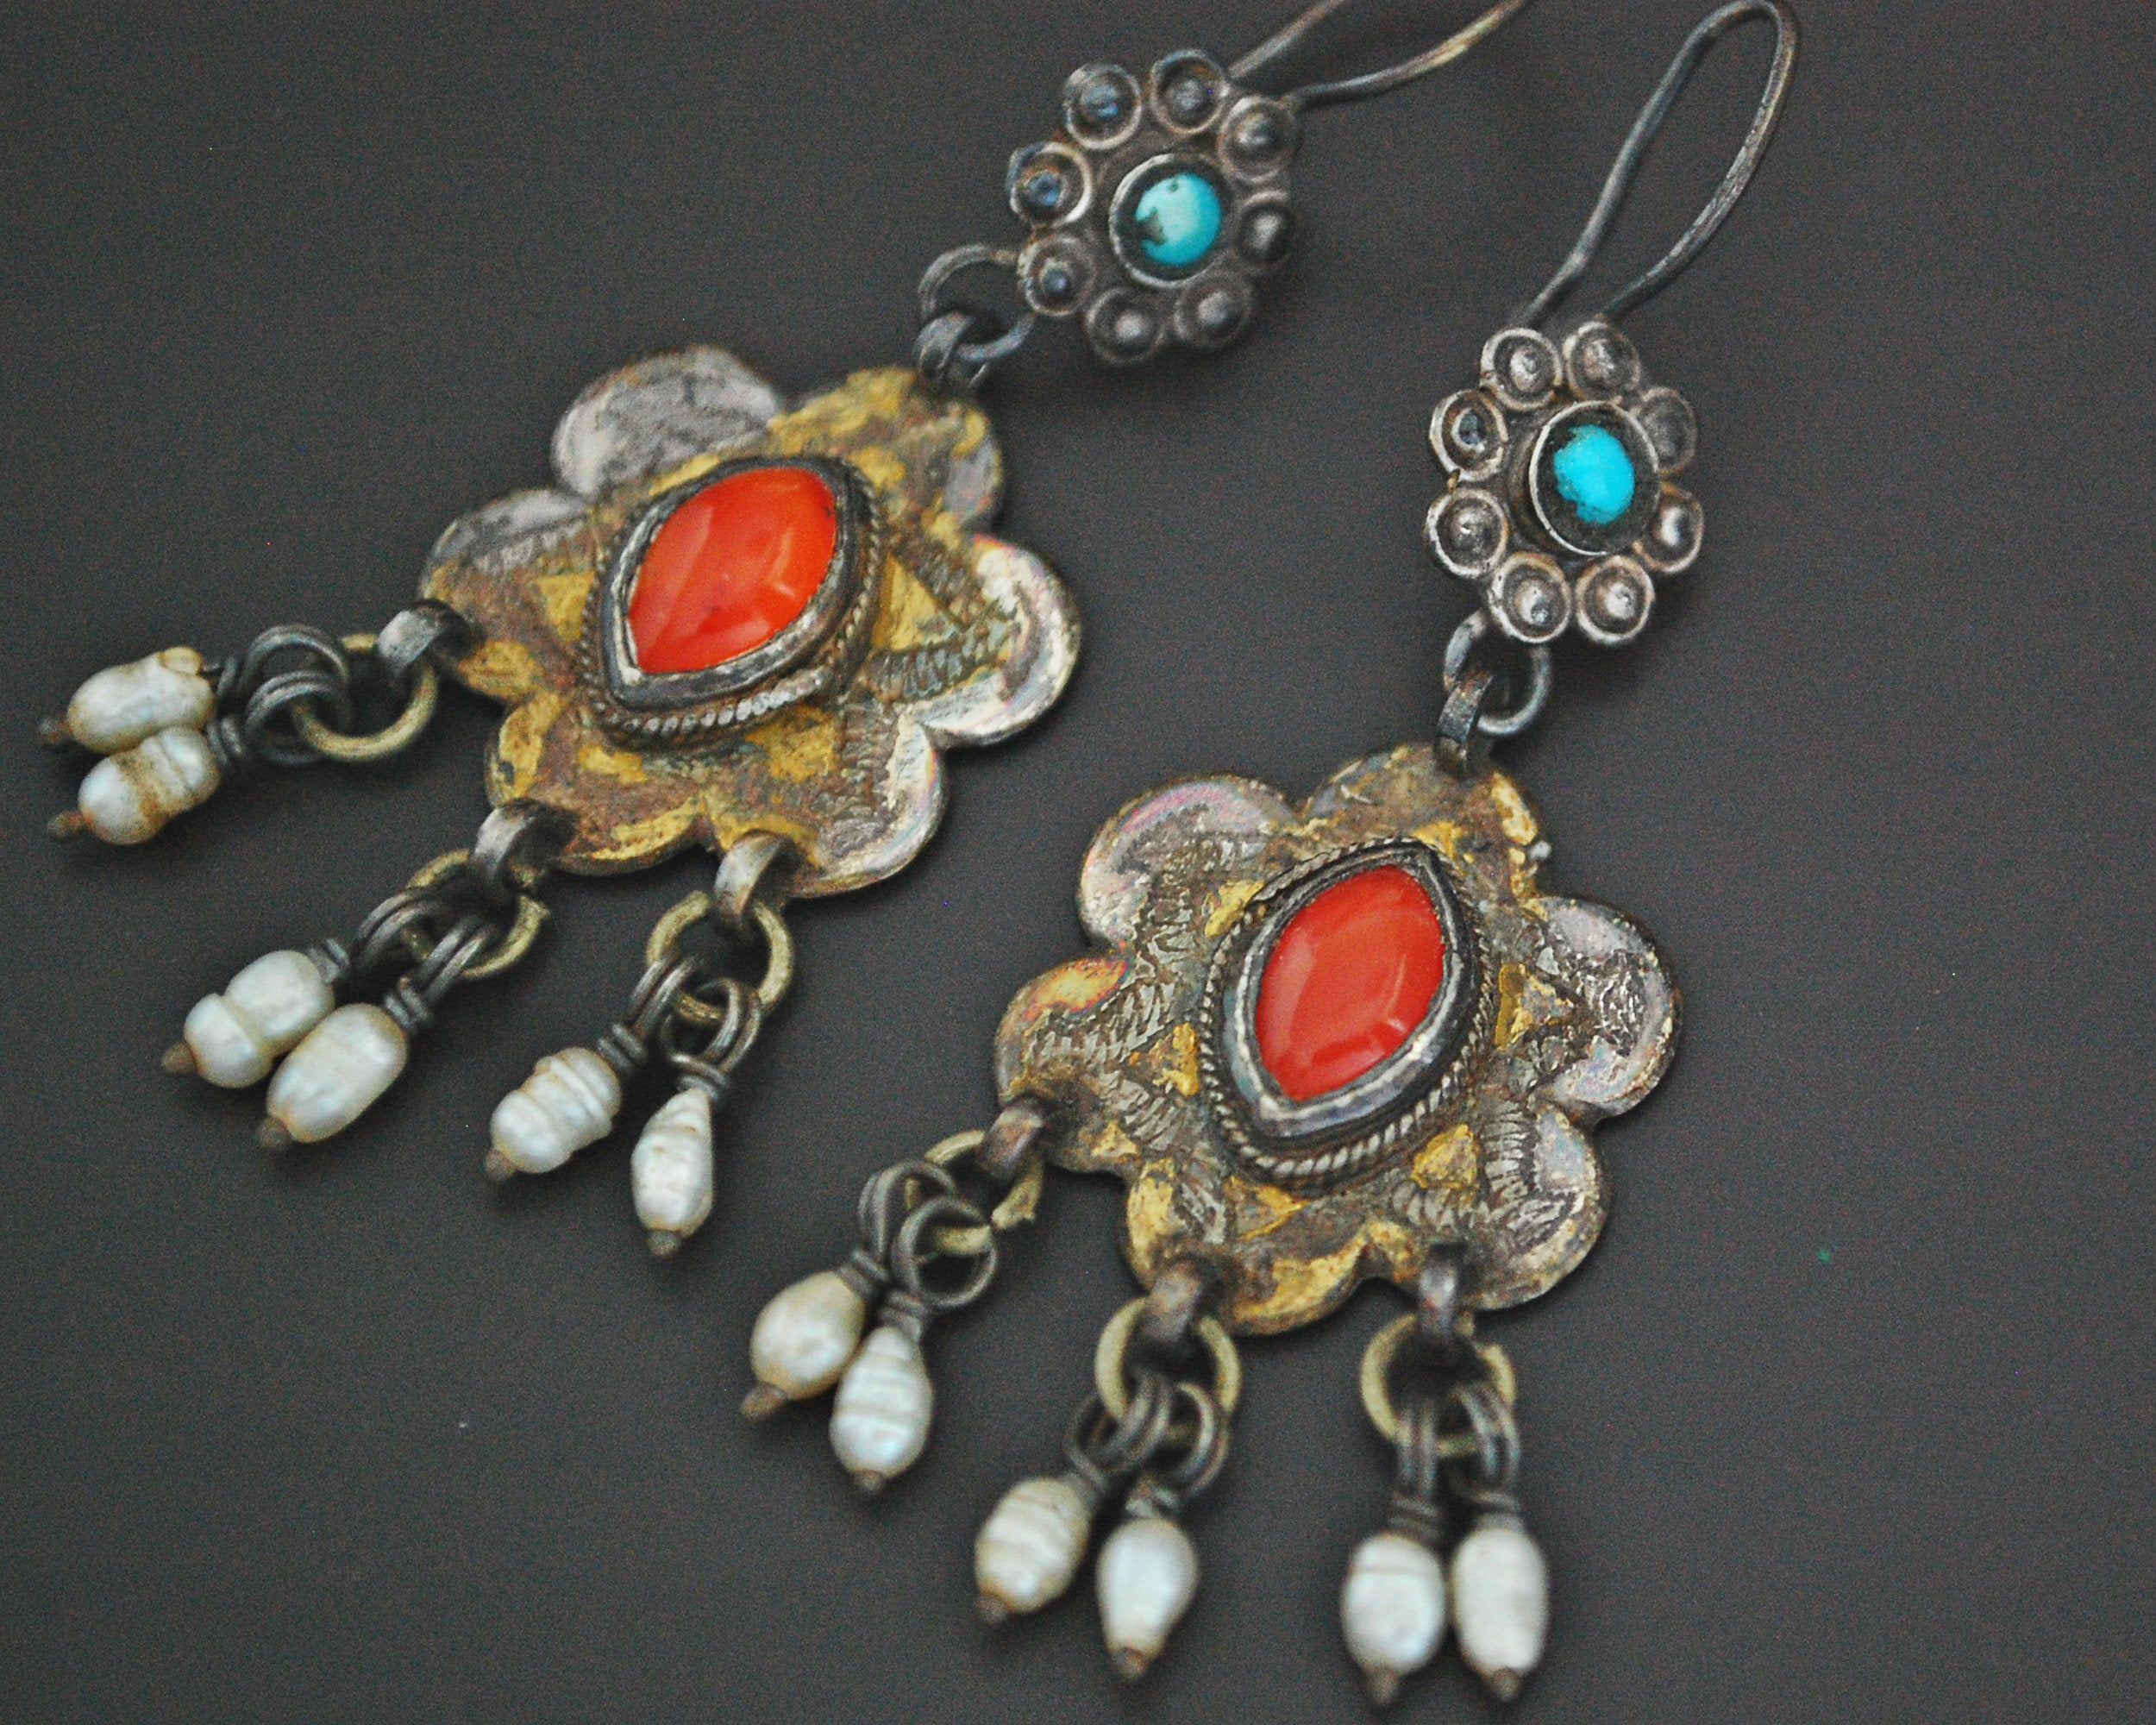 Turkmen Gilded Earrings with Carnelian, Pearls and Turquoise